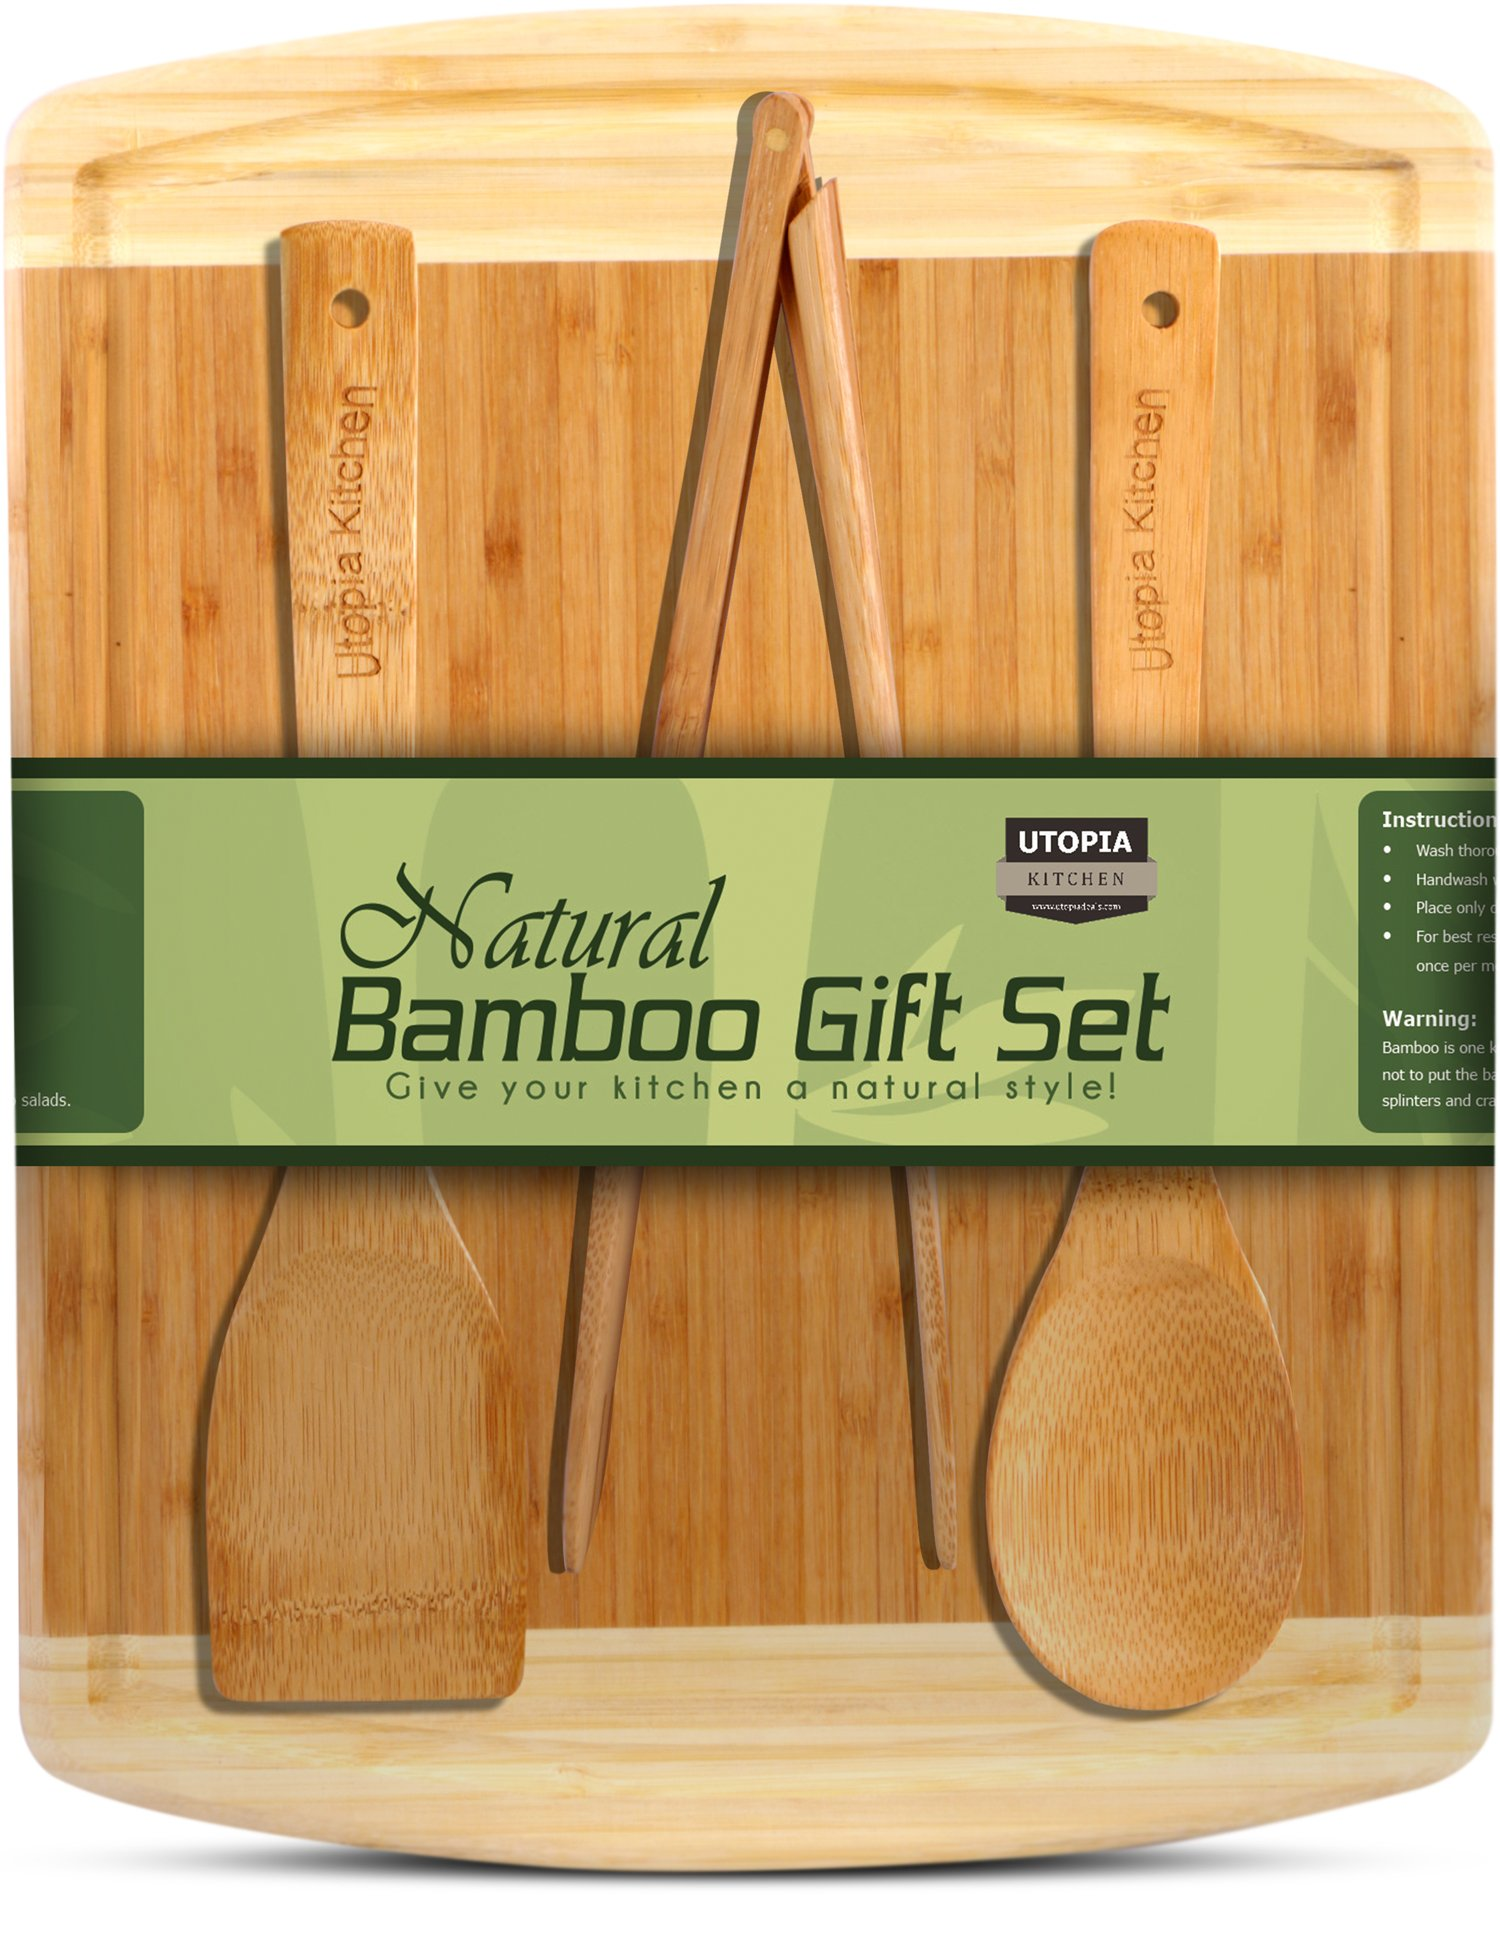 Utopia Kitchen Natural Bamboo Gift Set with 3-Piece Wooden Utensils and a 14.5'' x 11.5'' Bamboo Cutting Board